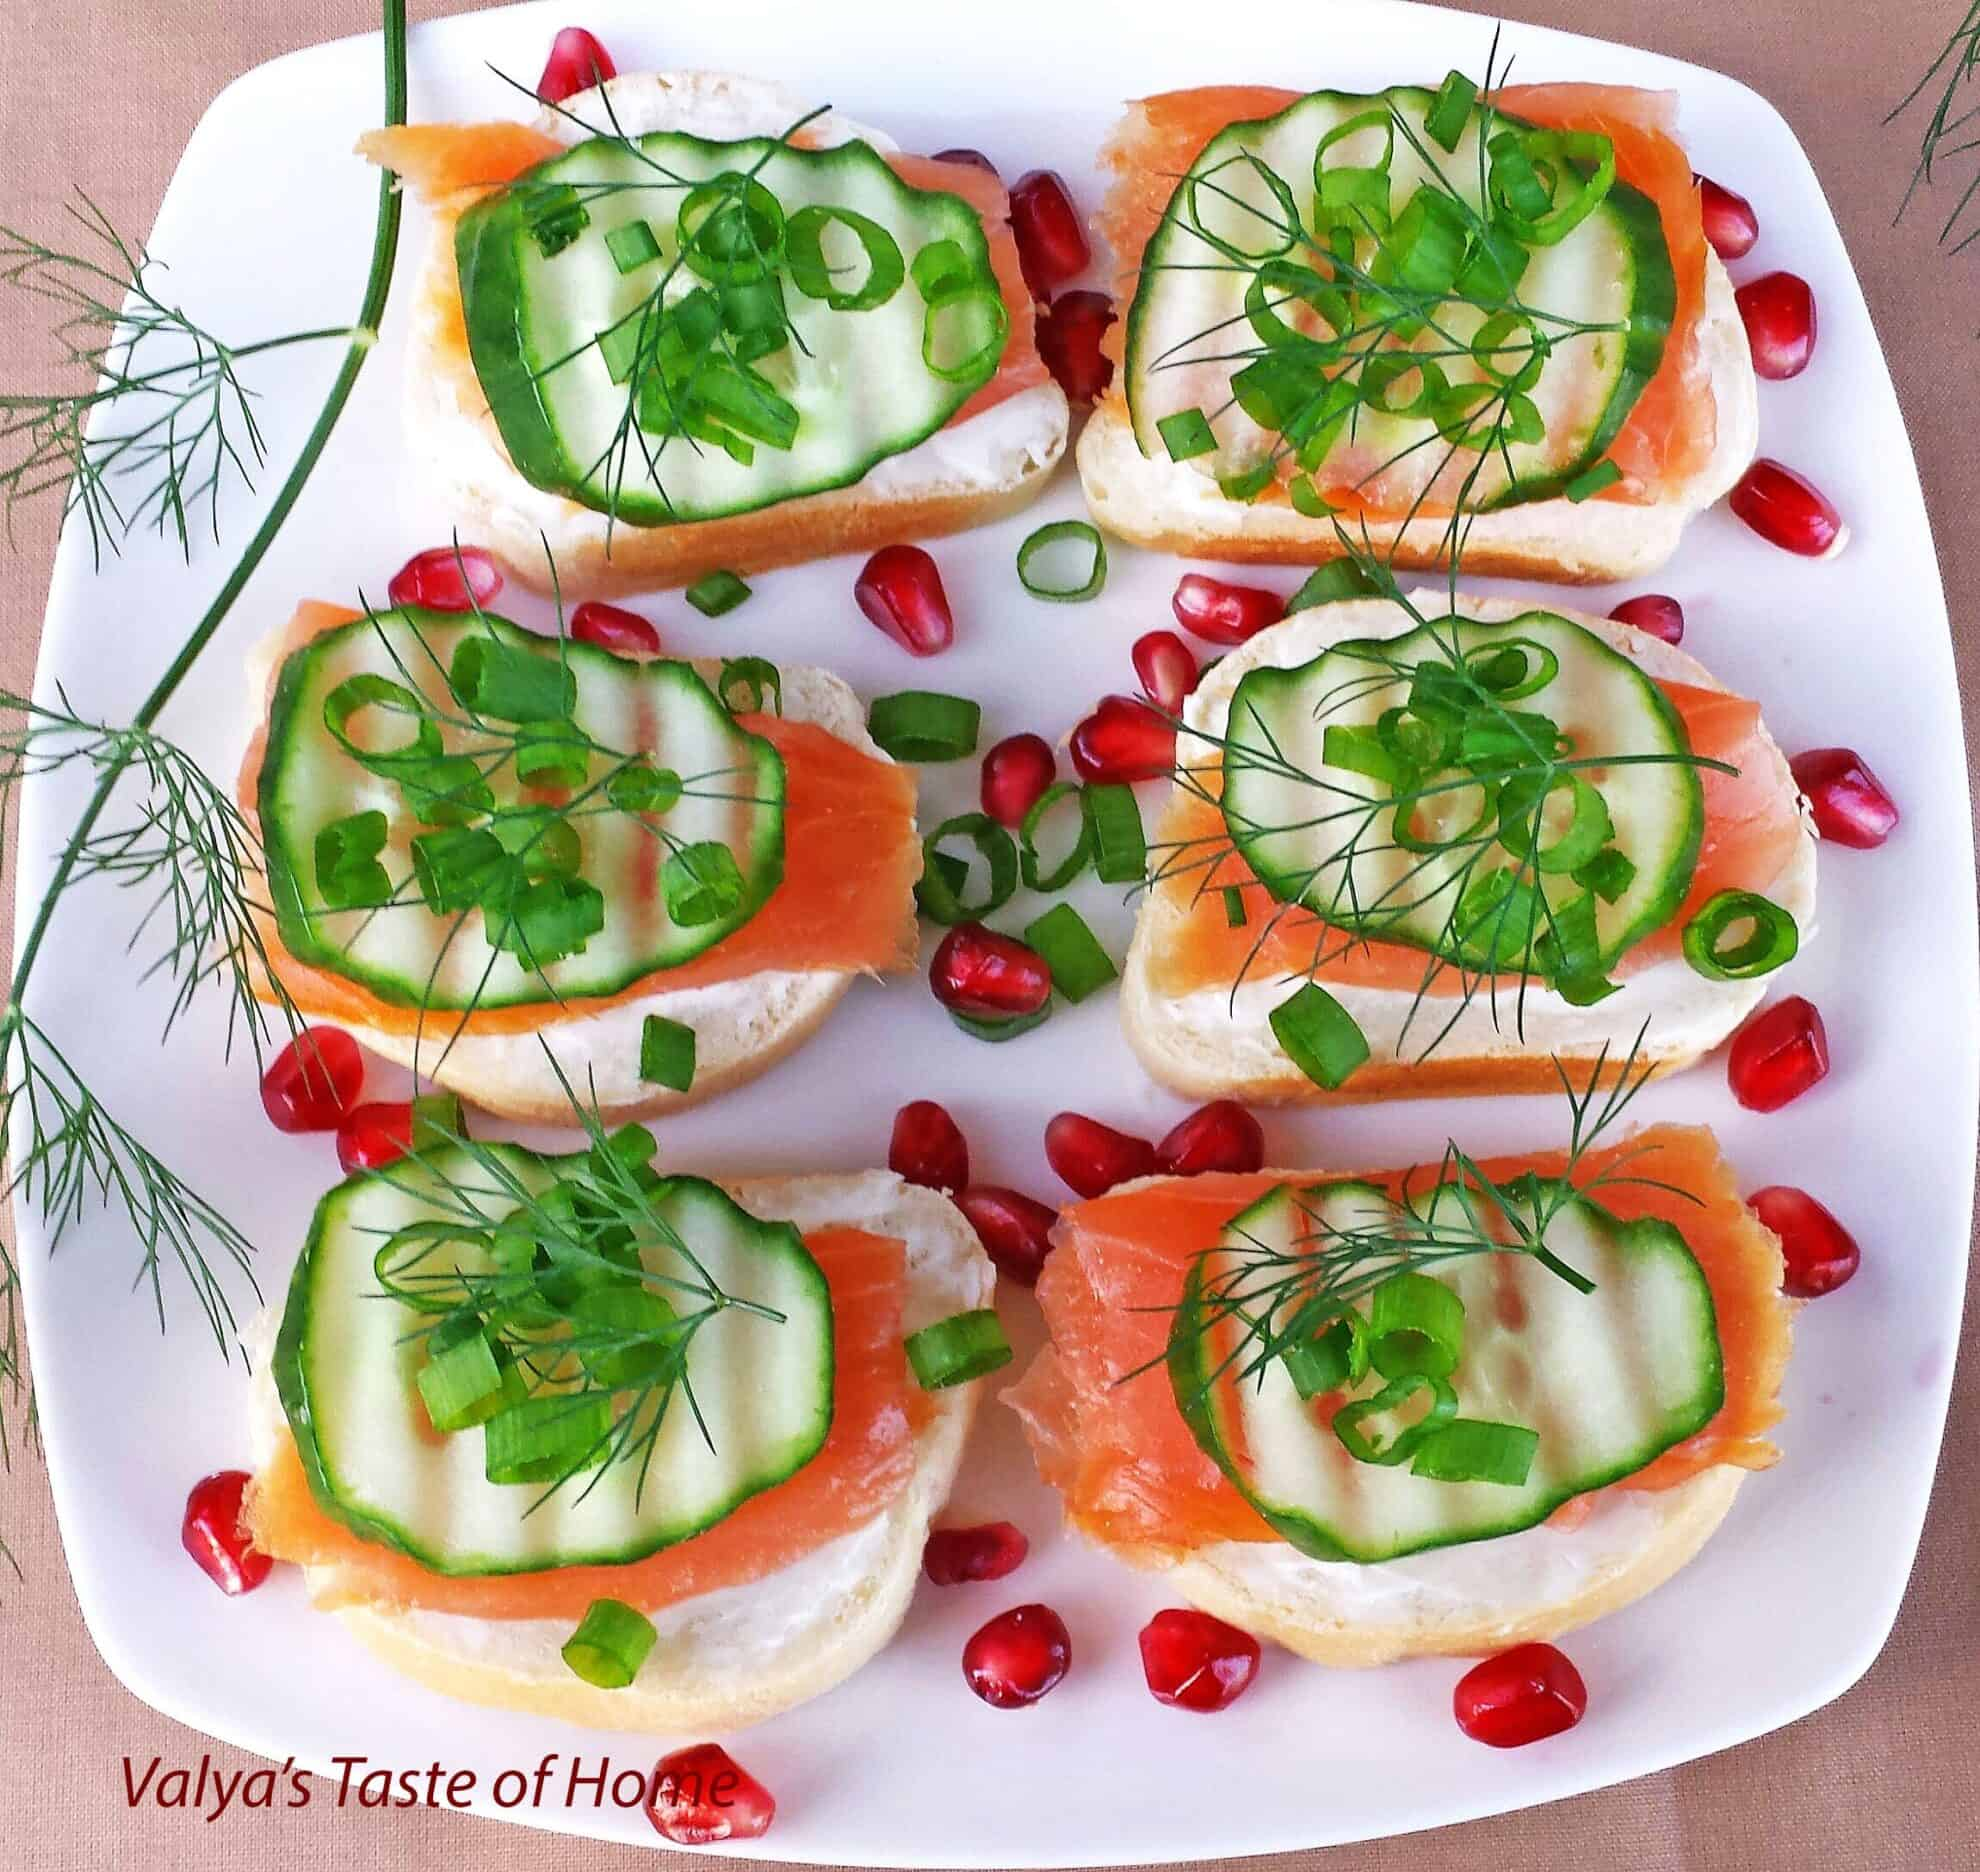 Smoked salmon canap s valya 39 s taste of home for What is a canape appetizer